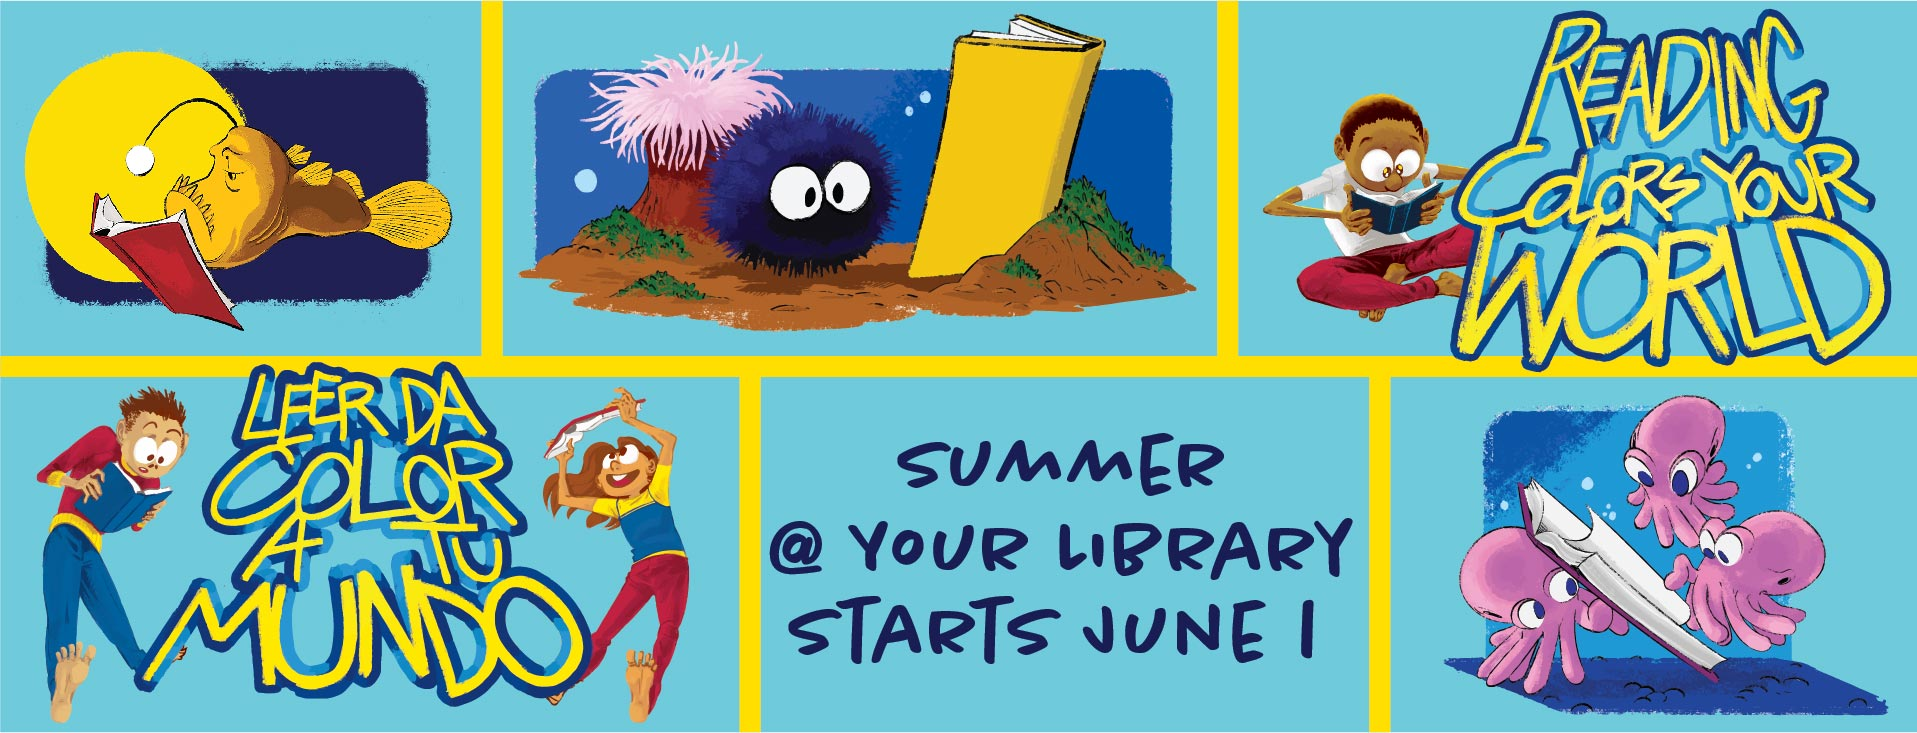 Summer At Your Library Starts June 1. Reading Colors Your World / Leer Da Color A Tu Mundo